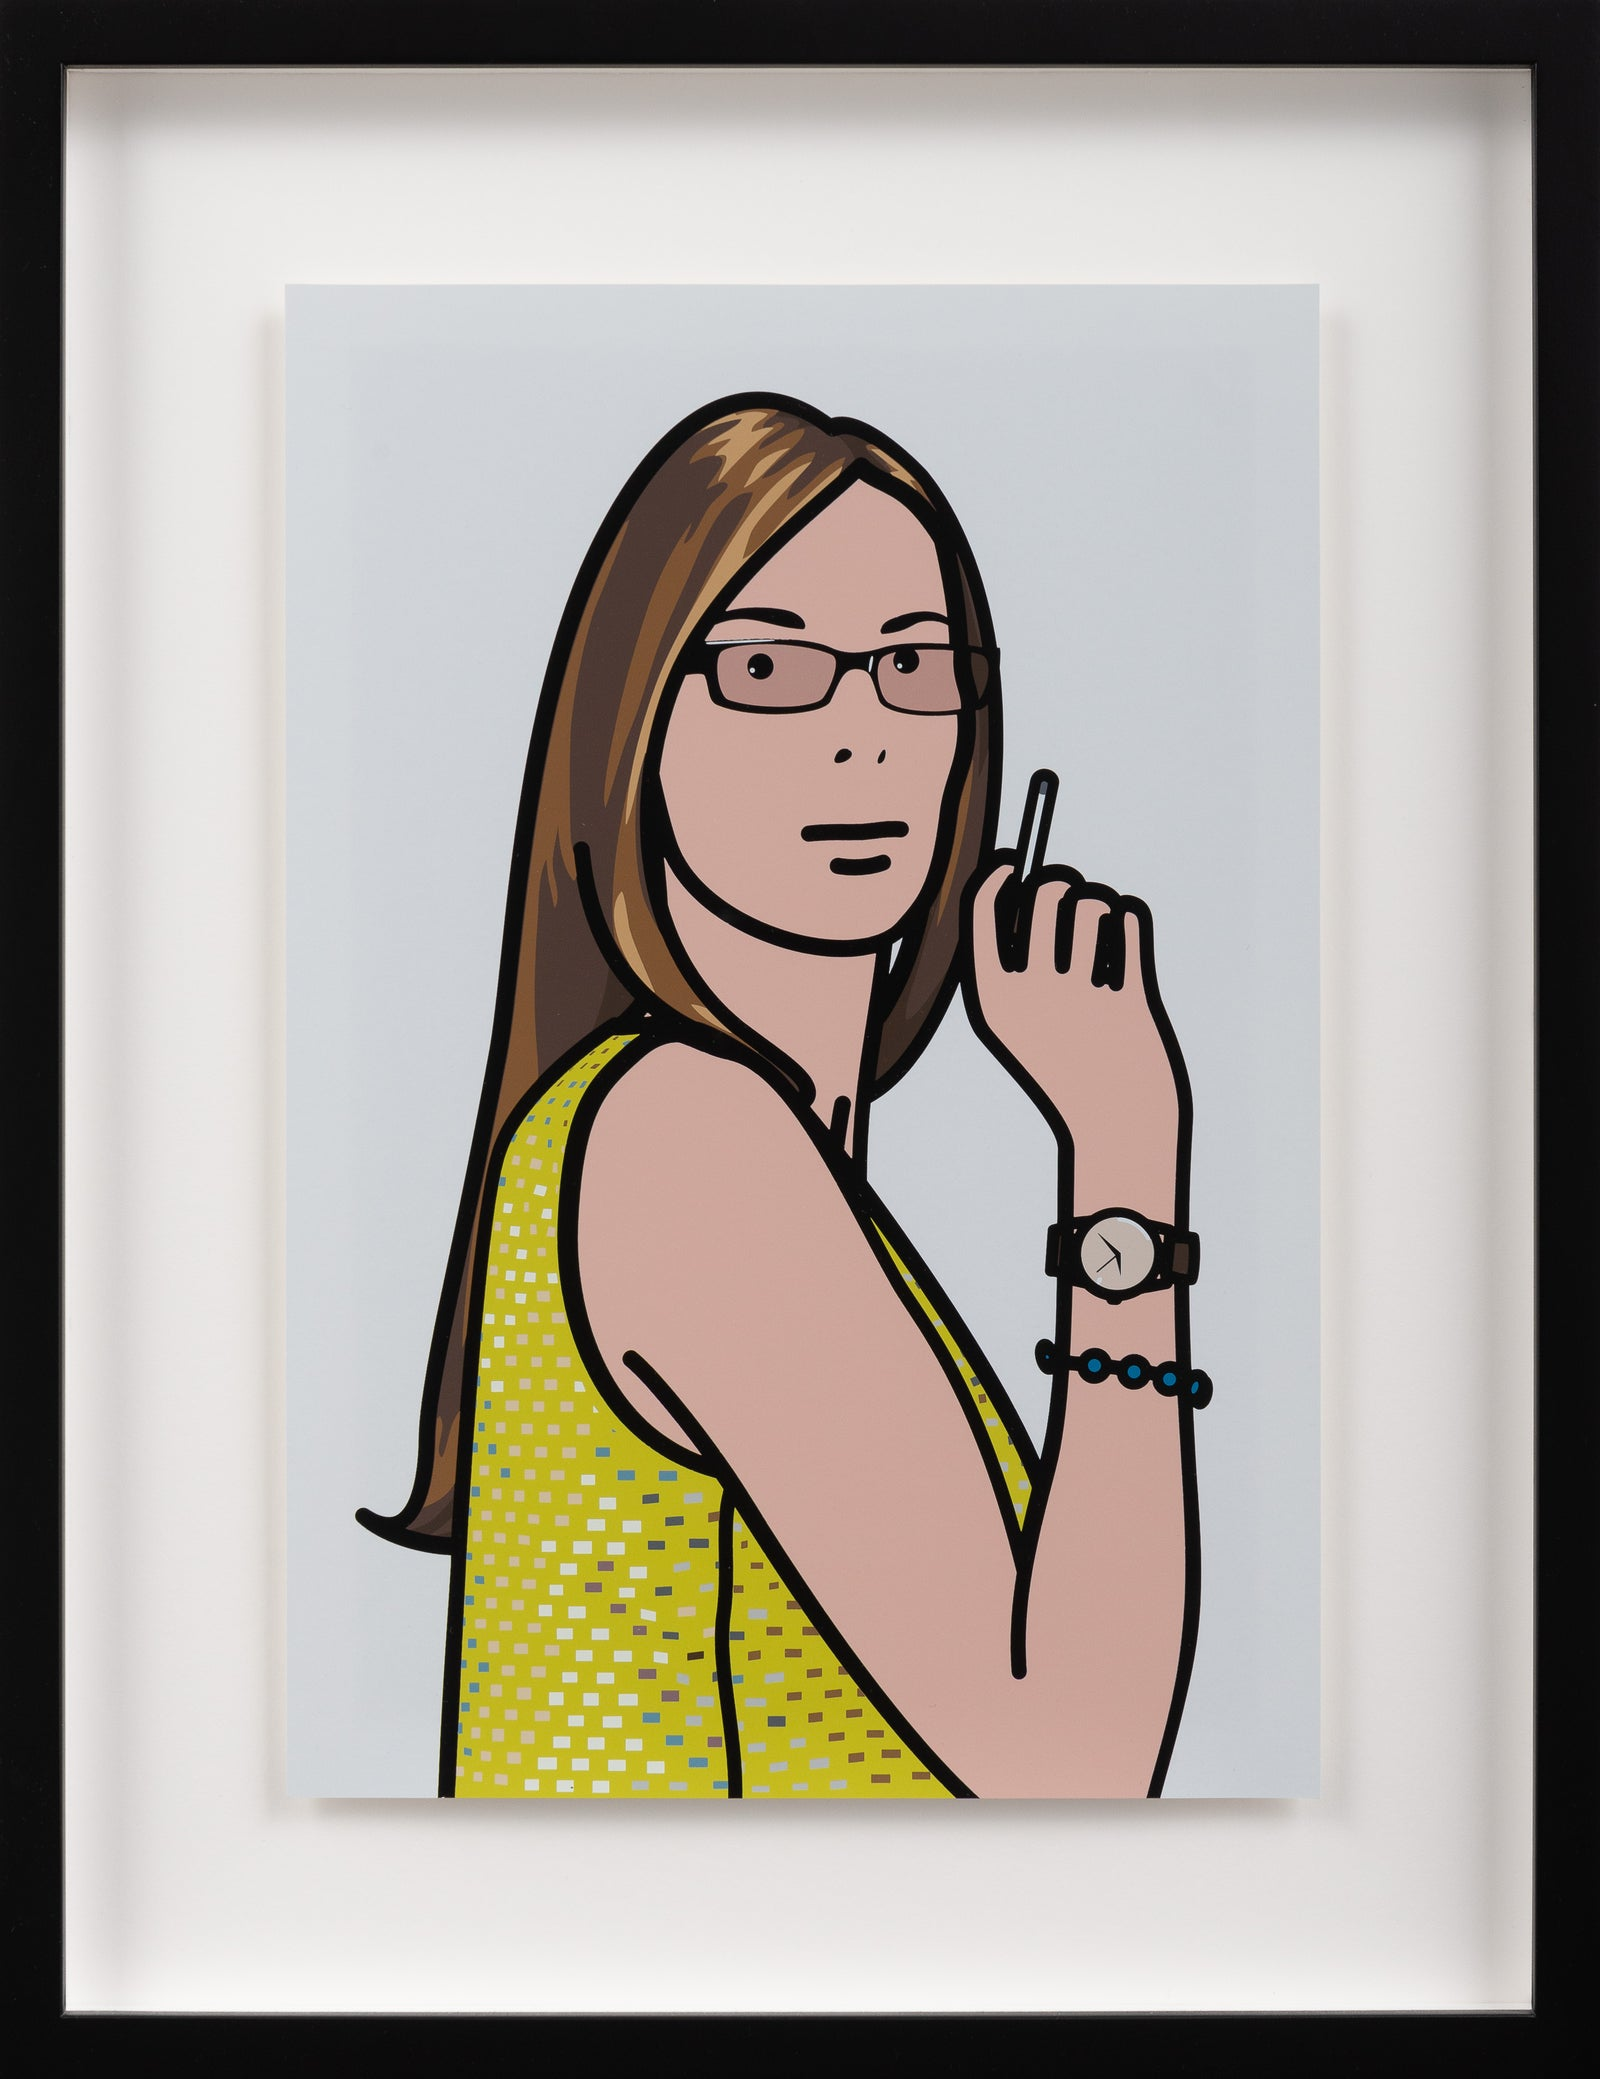 Ruth smoking 2.  TWENTY SIX PORTRAITS BY JULIAN OPIE